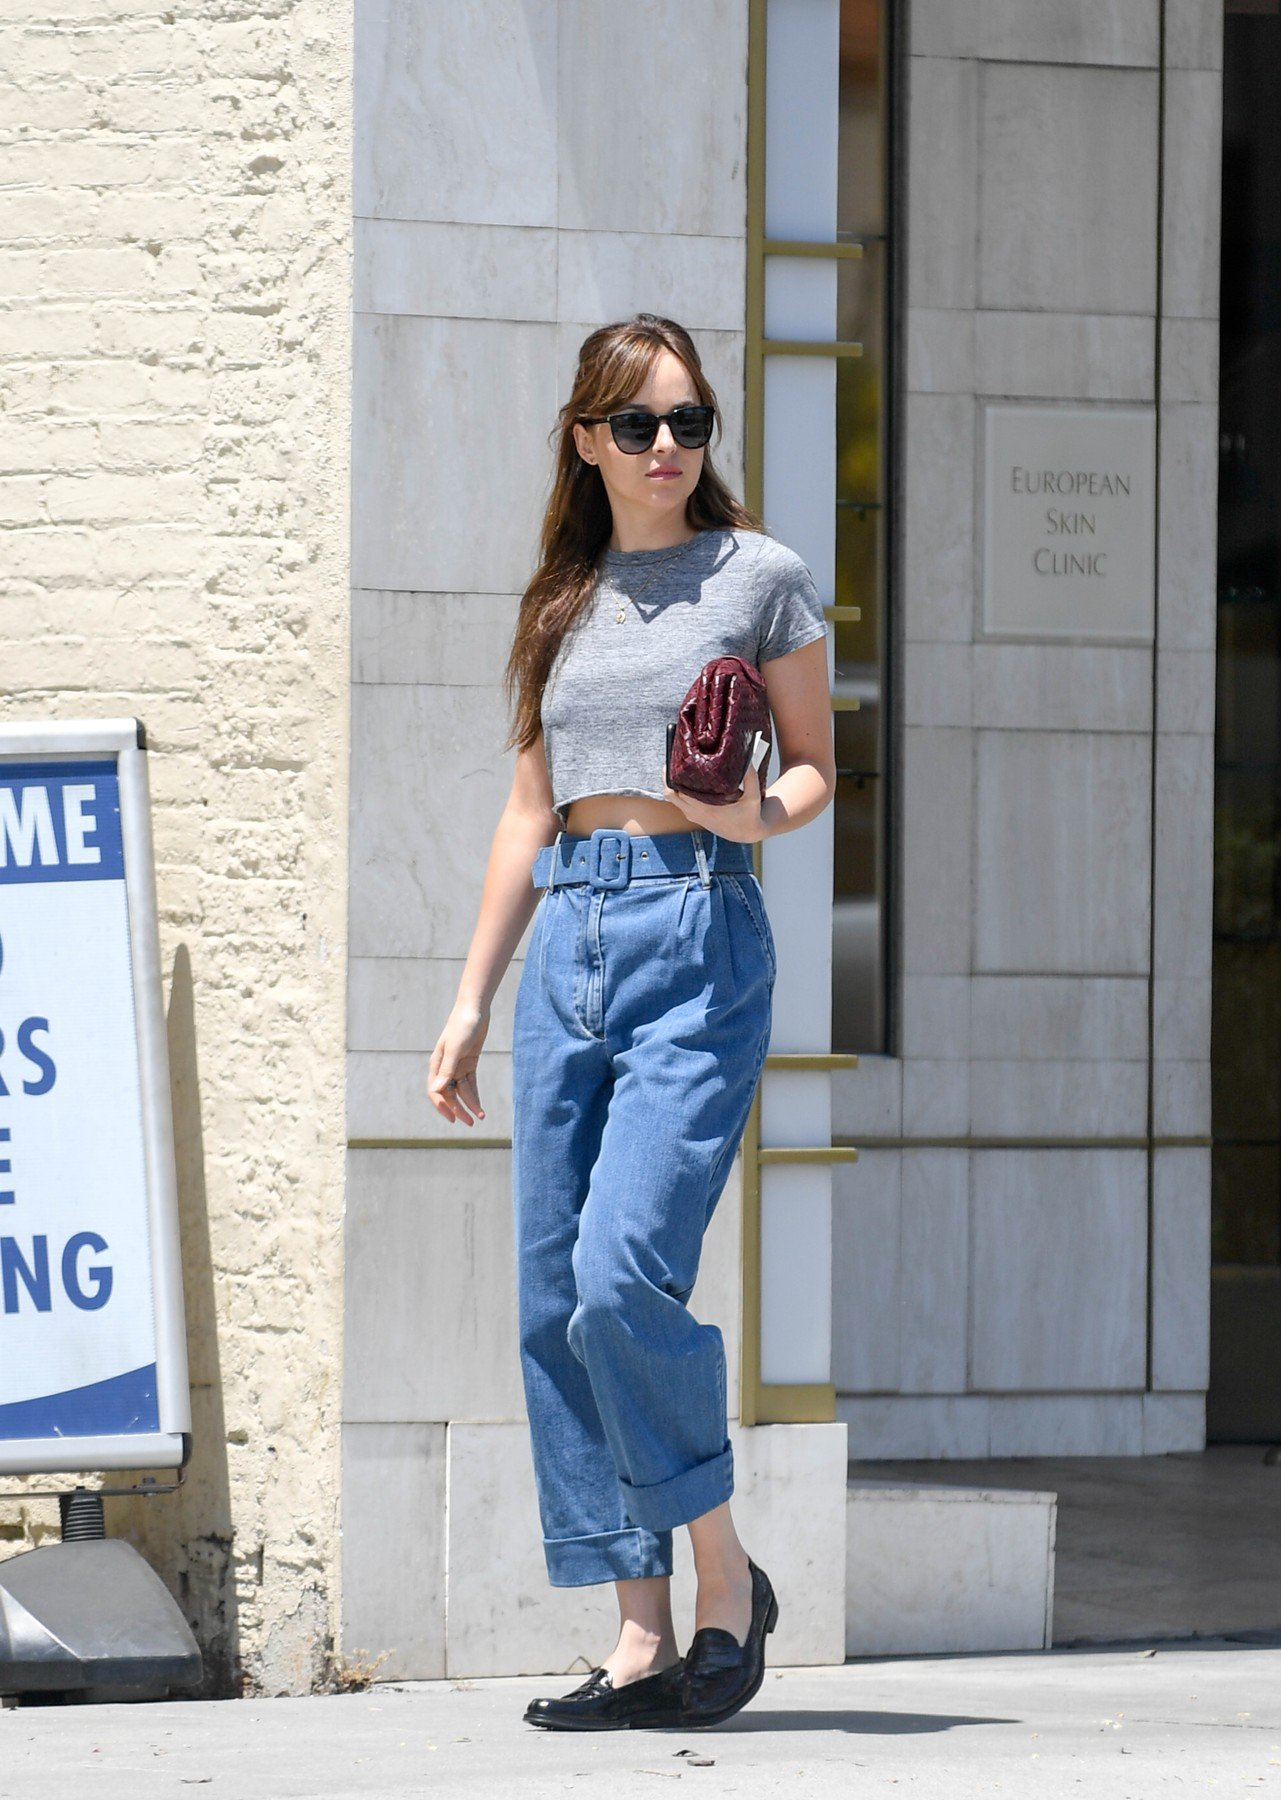 EXCLUSIVE: Dakota Johnson spotted leaving Thibiant in Beverly Hills. 11 Jul 2018, Image: 377579690, License: Rights-managed, Restrictions: World Rights, Model Release: no, Credit line: Profimedia, Mega Agency